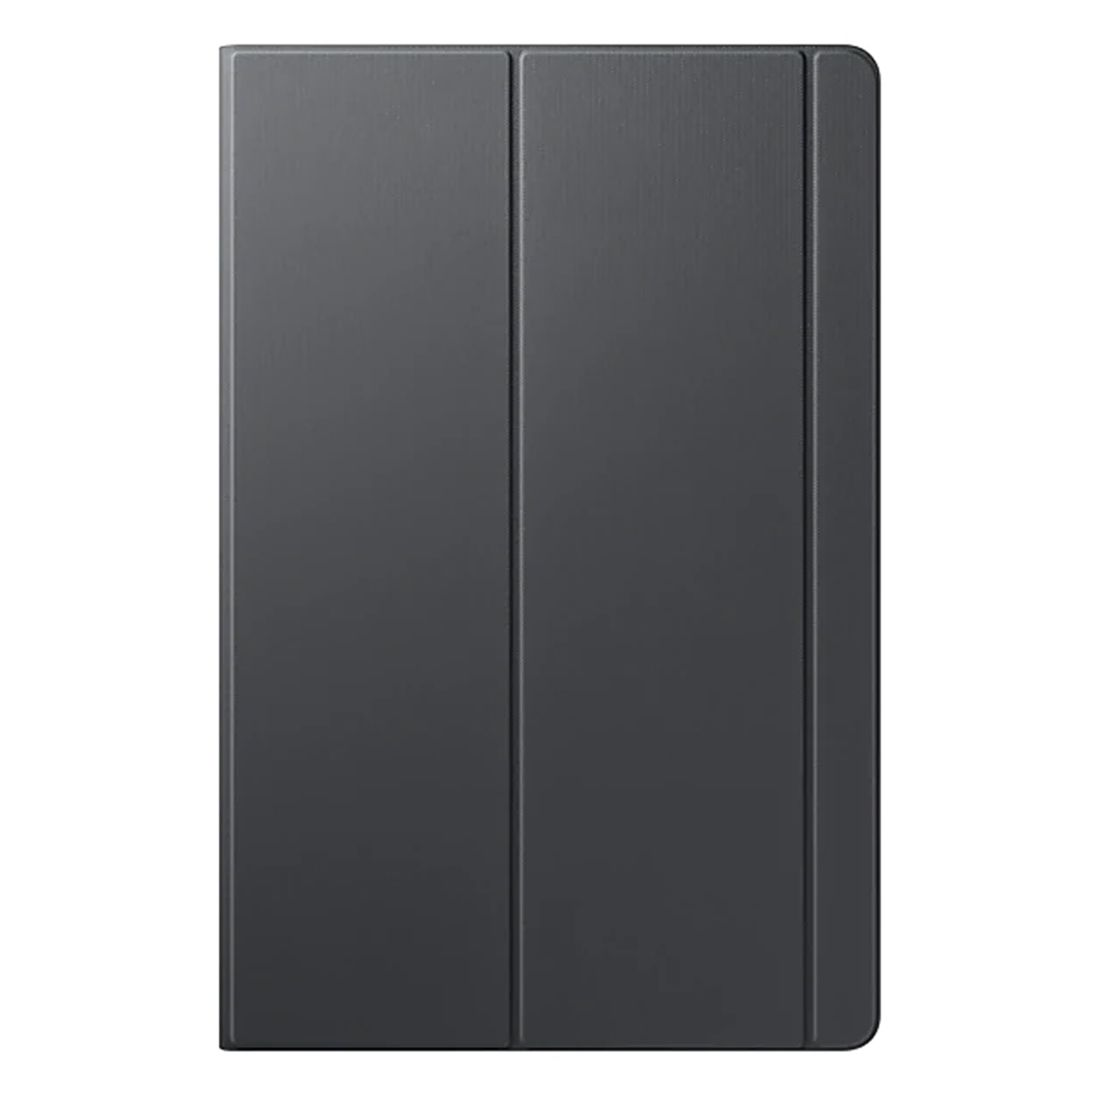 Samsung Galaxy Tab S6 10.5 Book Cover - Grey